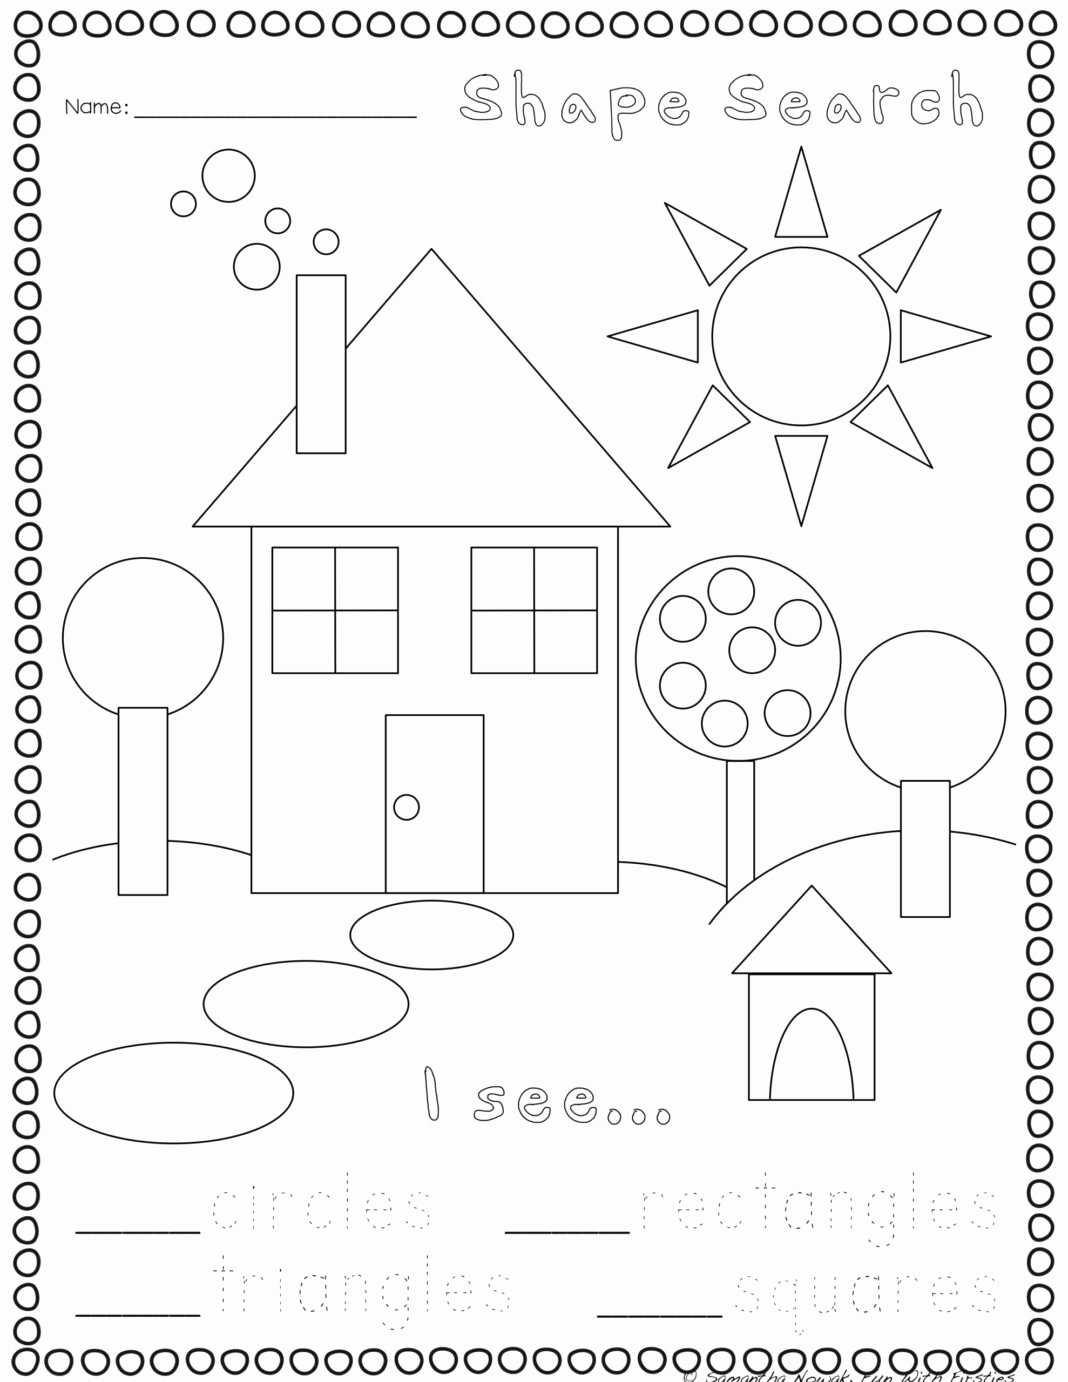 Free Worksheets for Preschoolers Shapes Ideas Worksheets Print Go Geometry Practice Worksheets Preschool